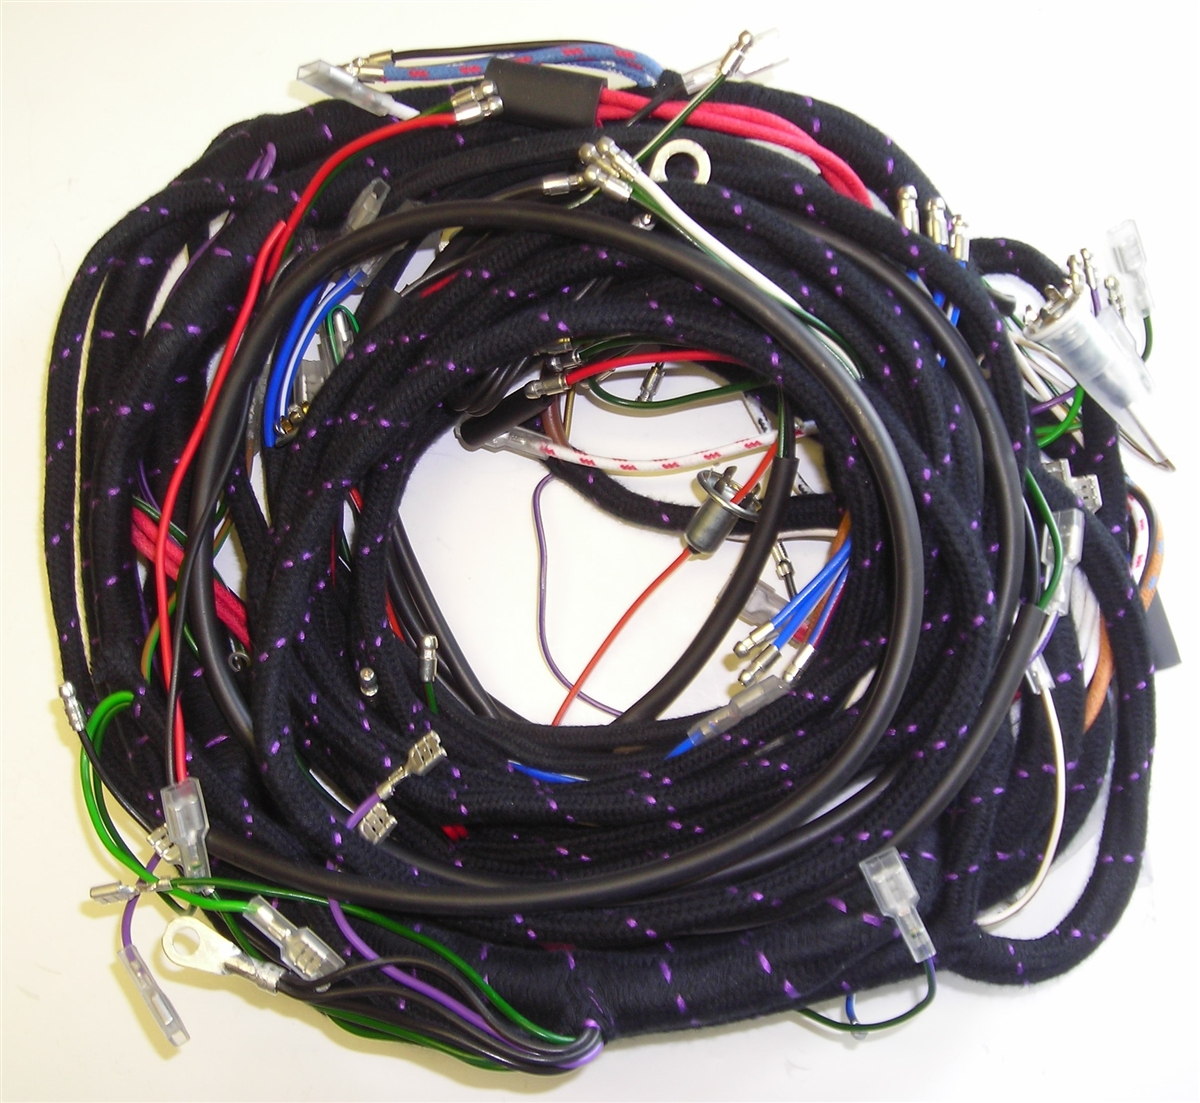 wrg 9599] british wiring harness